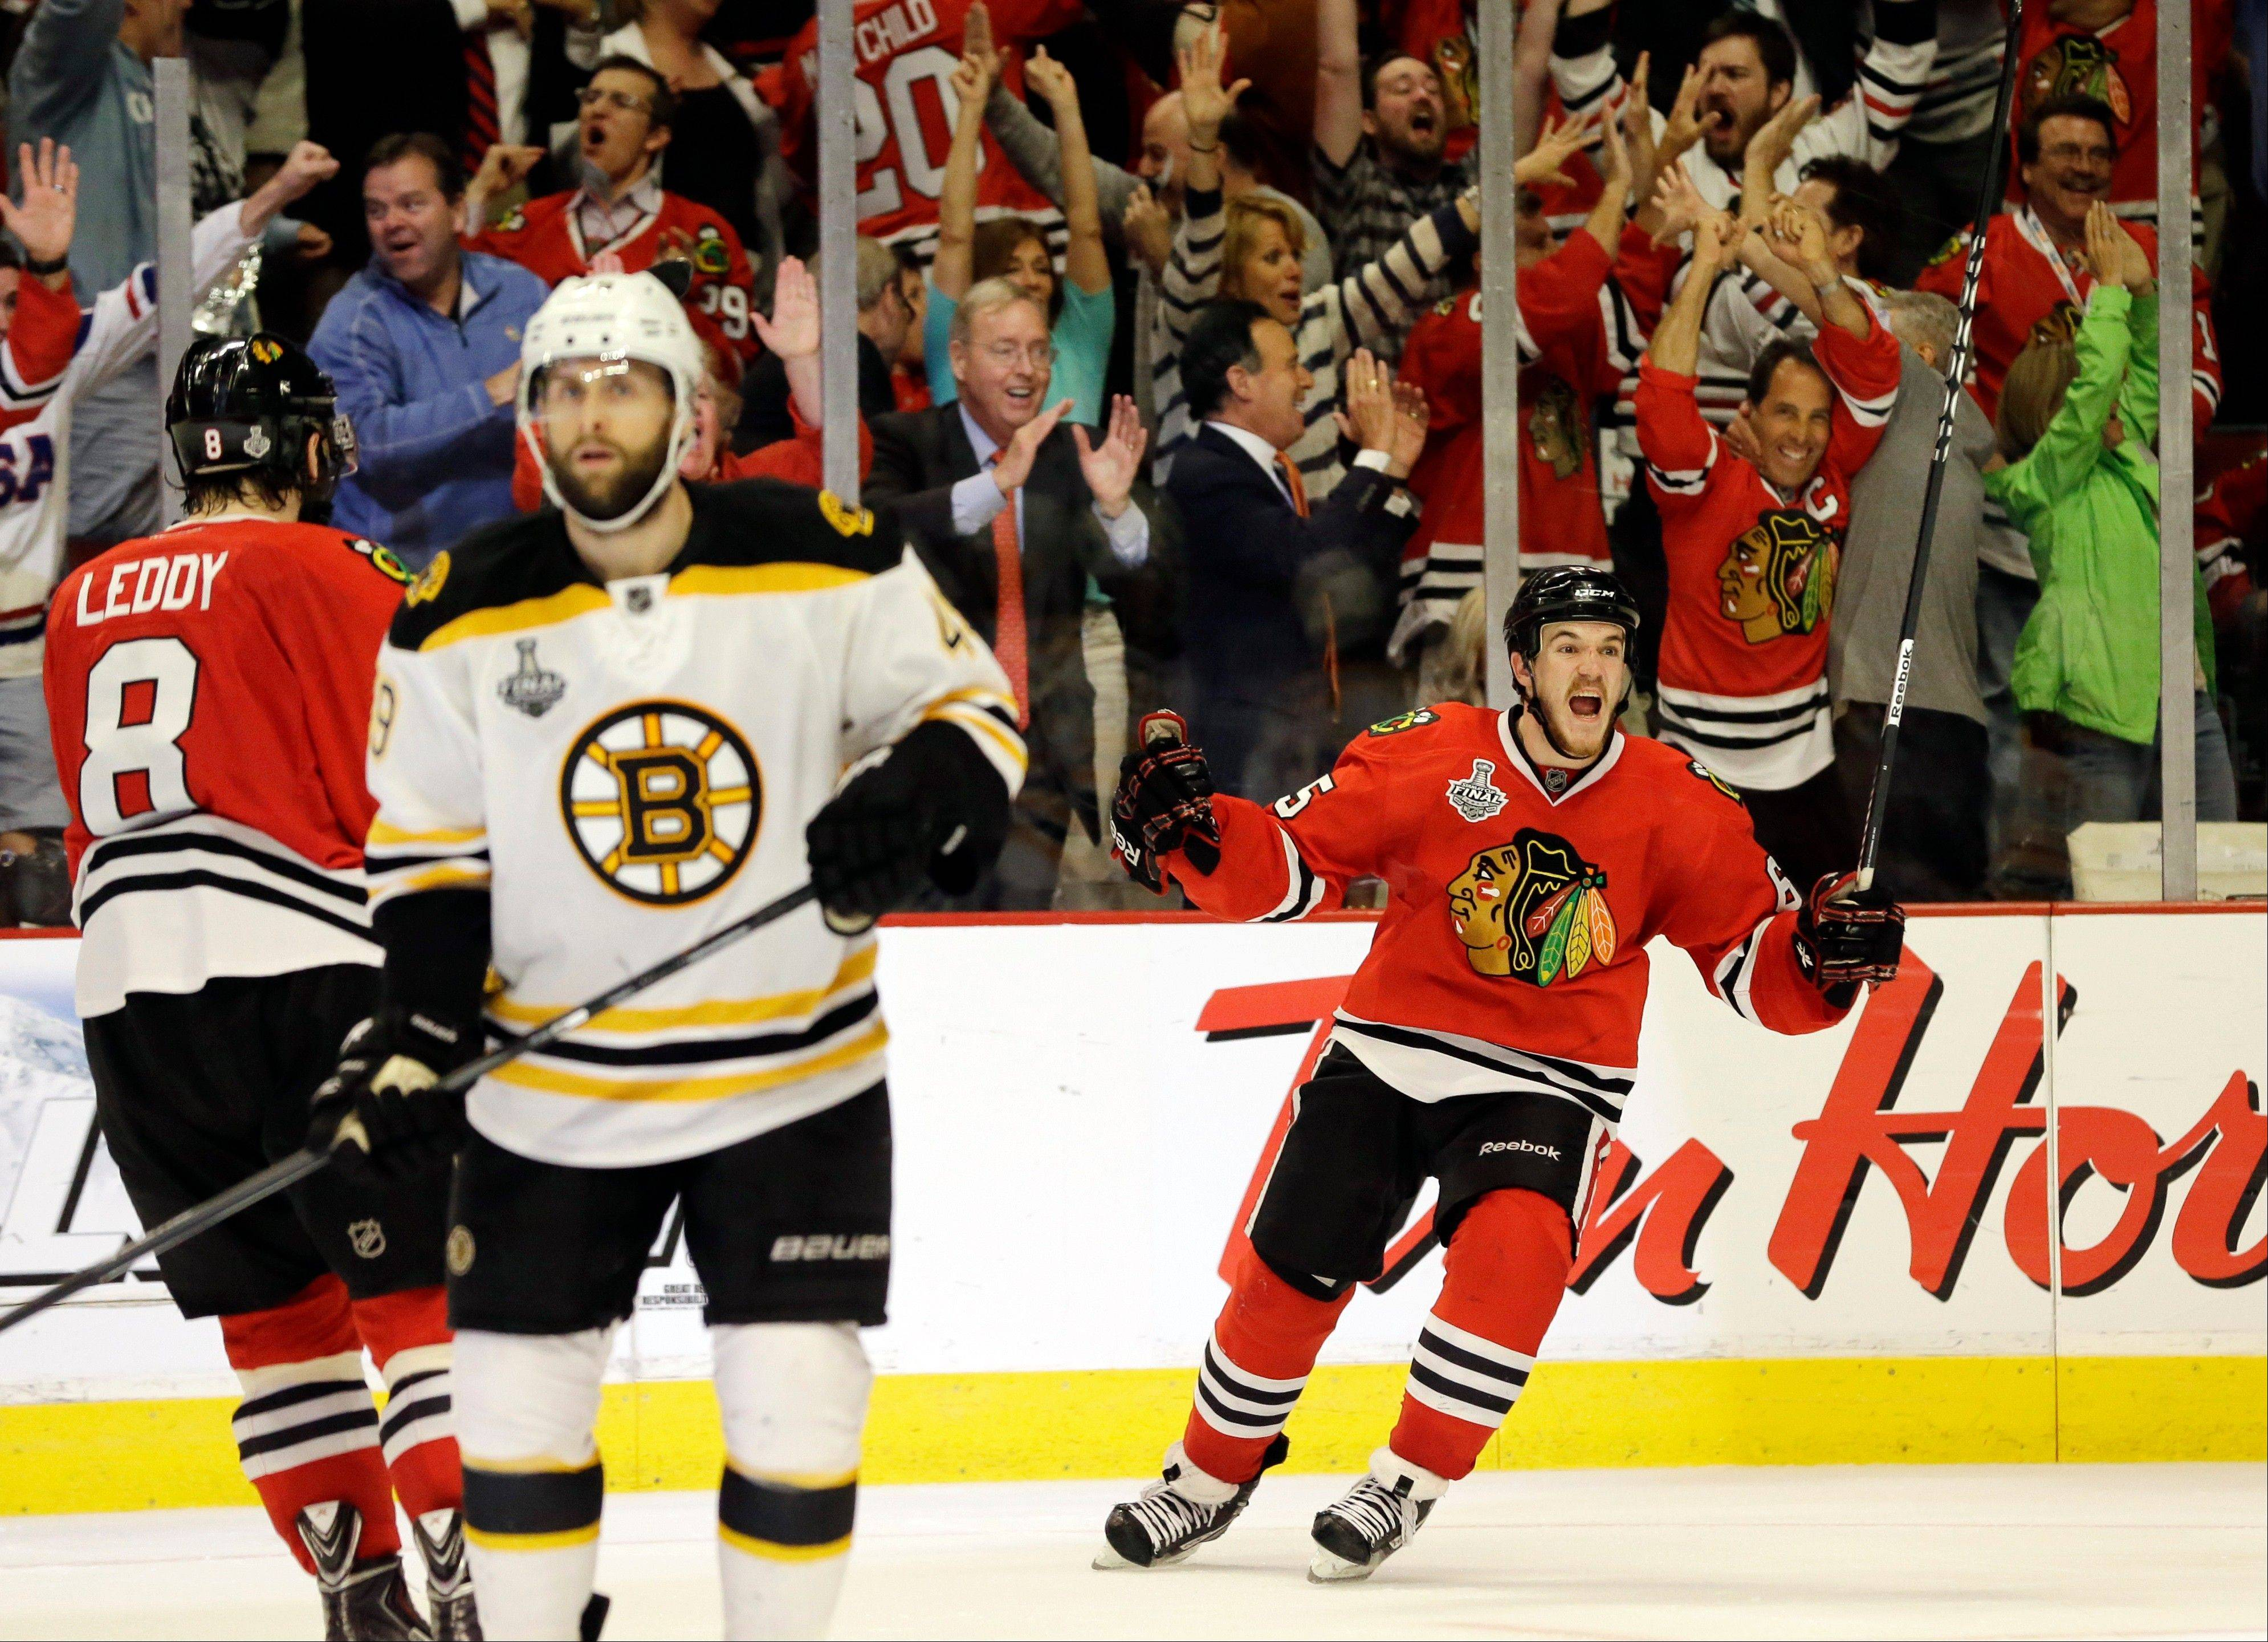 Chicago Blackhawks center Andrew Shaw, right, celebrates after scoring the winning goal during the third overtime period of Game 1 in their NHL Stanley Cup Final hockey series against the Boston Bruins, Thursday, June 13, 2013, in Chicago. (AP Photo/Nam Y. Huh)